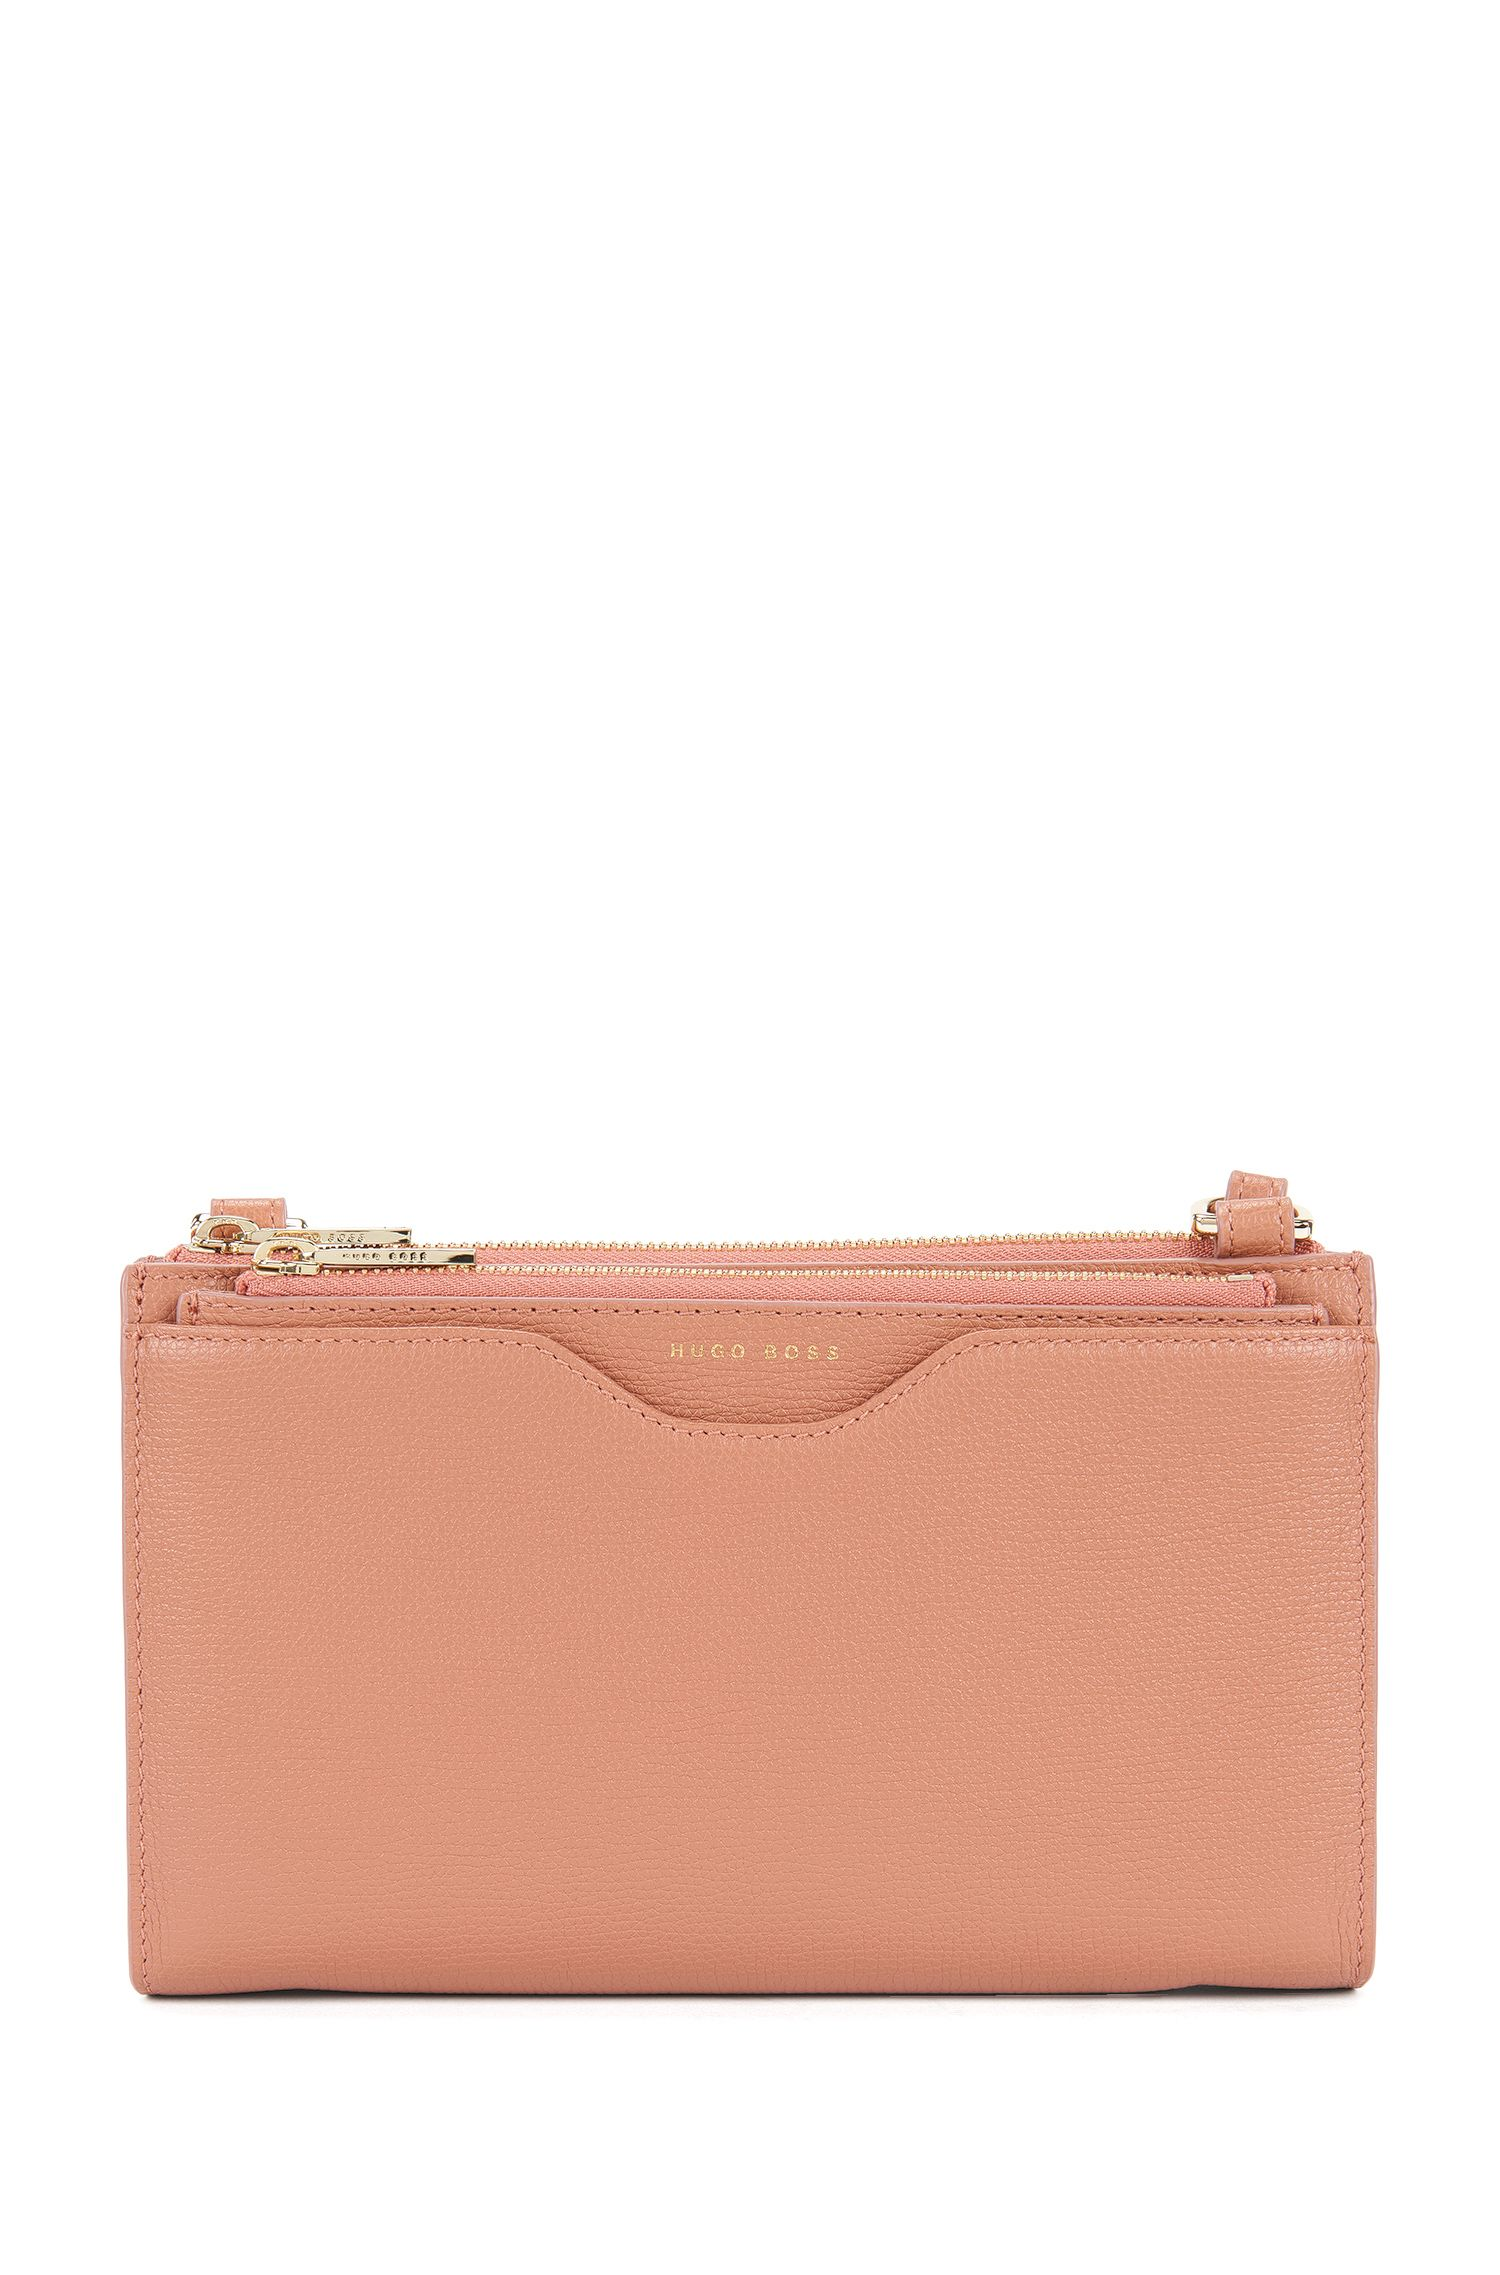 Compact bag in grained Italian leather